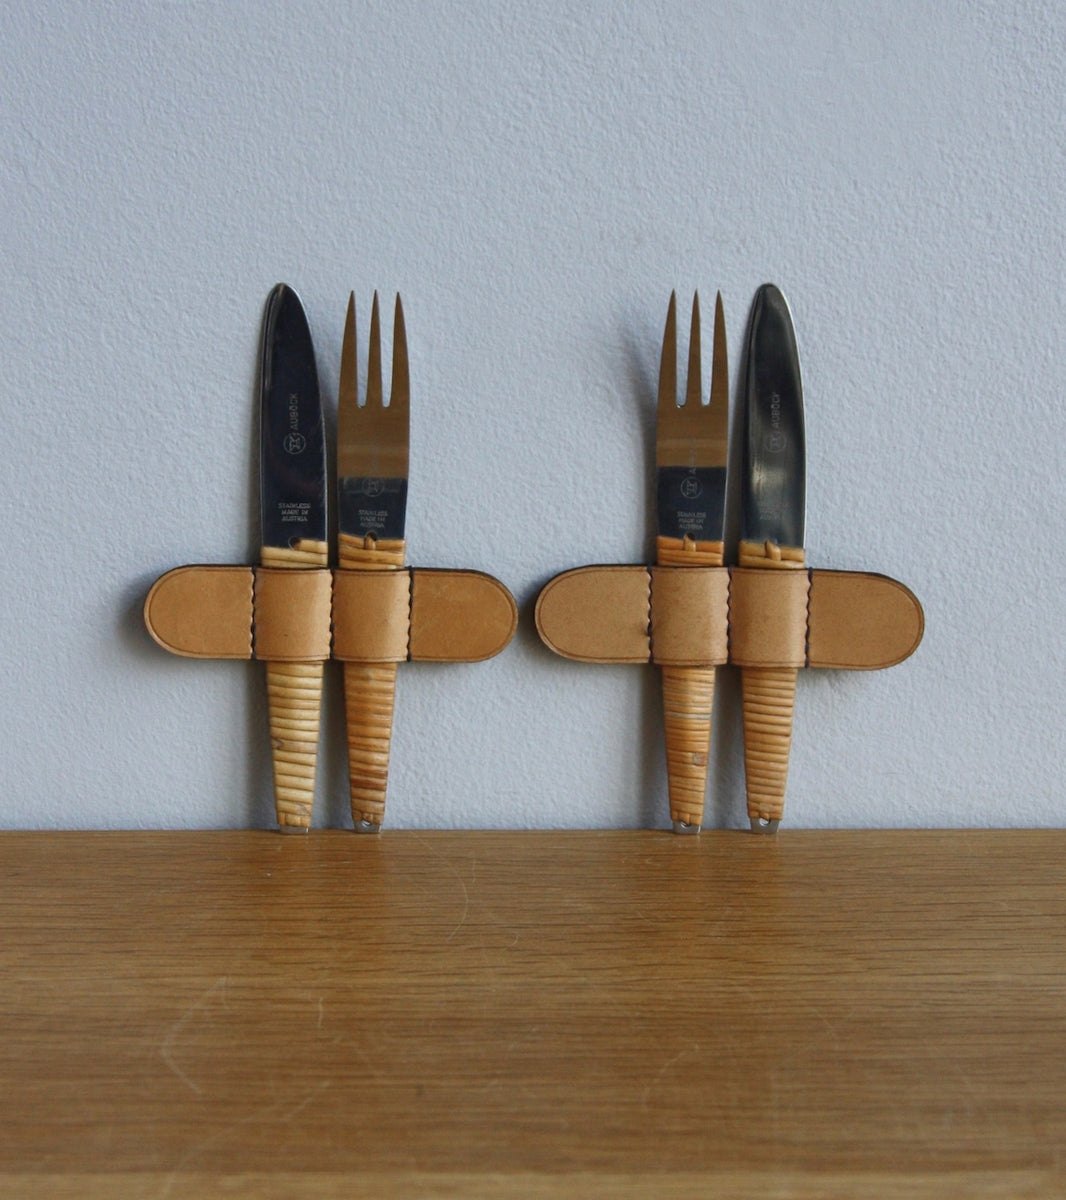 Two Sets of upright Knives & Forks in Stainless Steel & Wicker, Carl Auböck